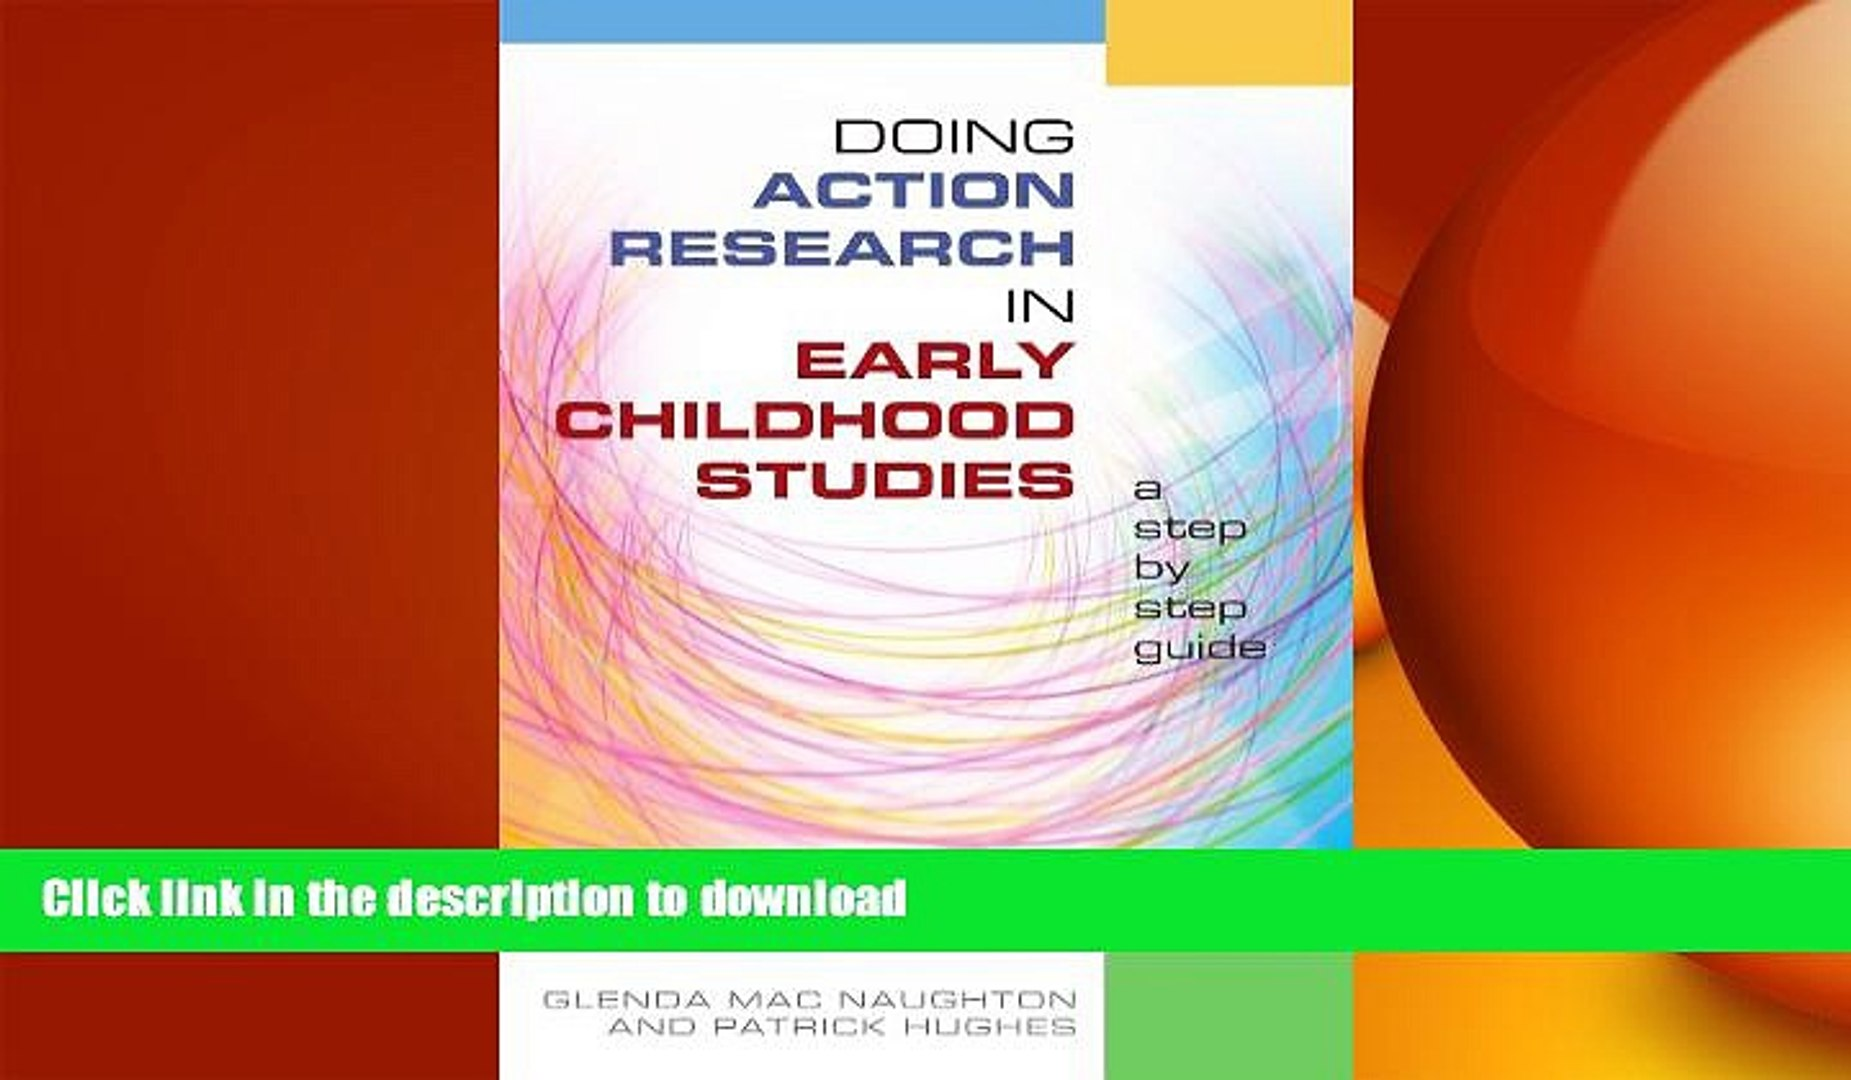 Doing Action Research in Early Childhood Studies: a step-by-step guide